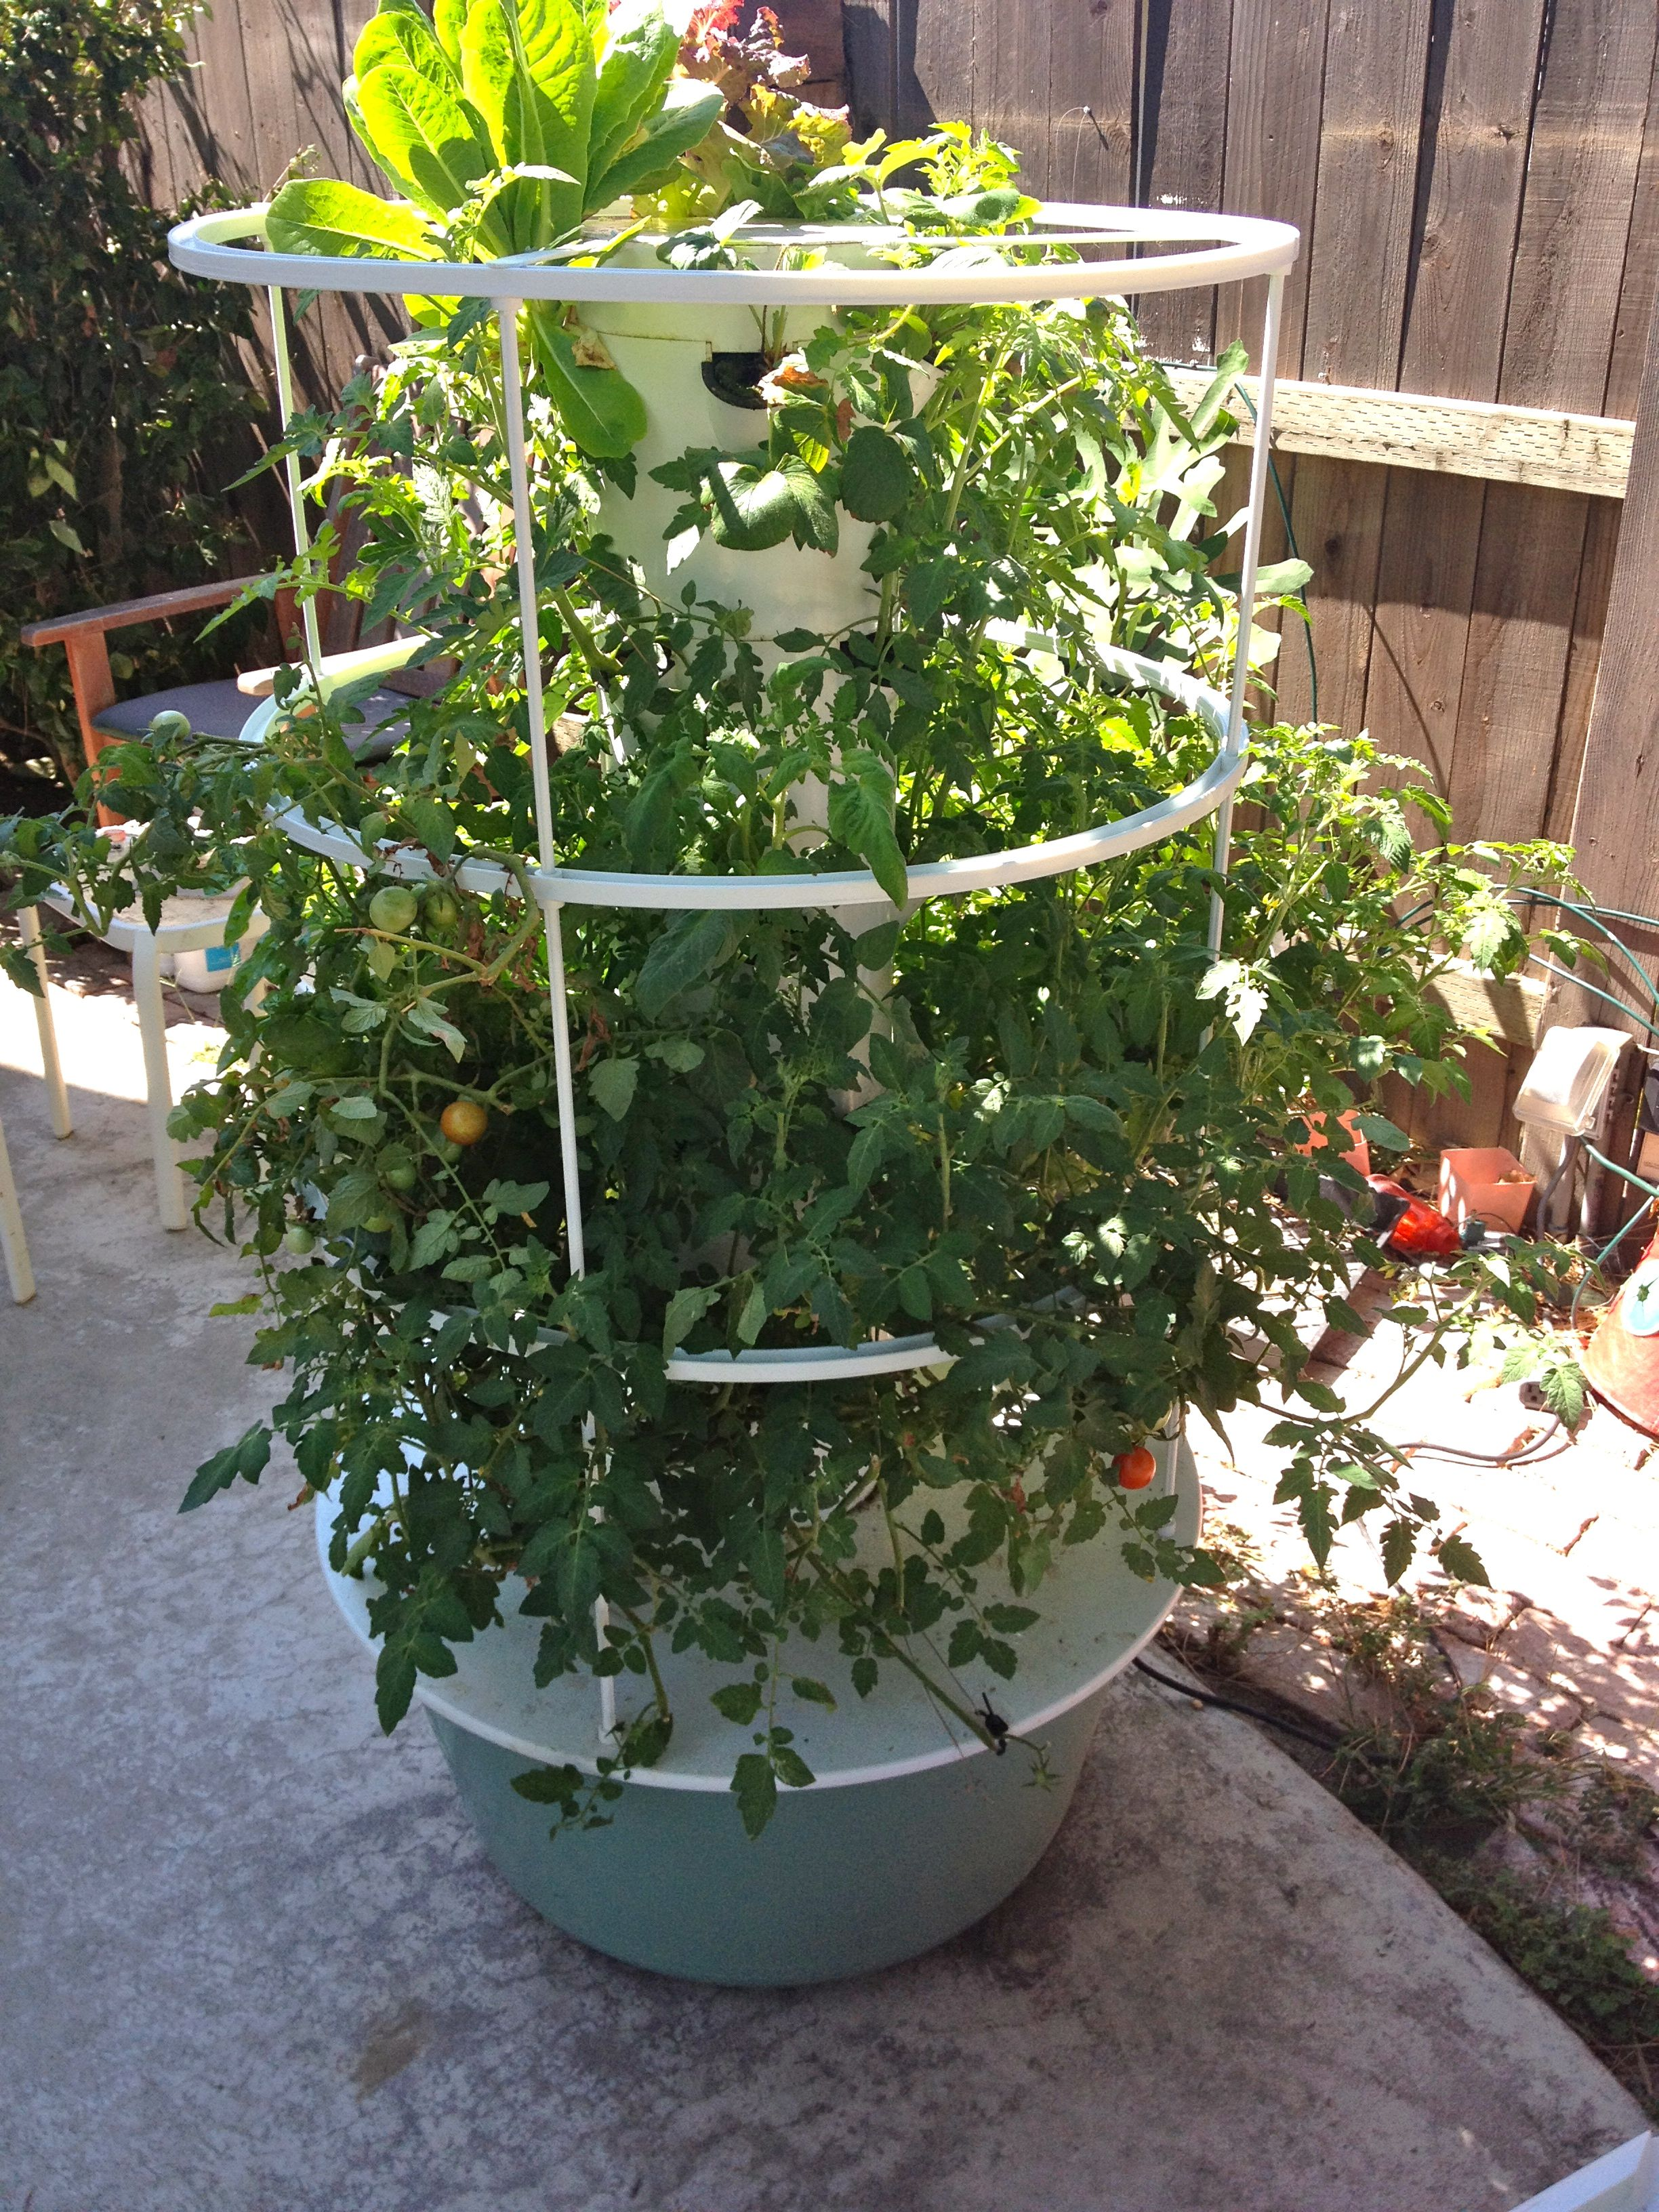 Tower Garden Hydroponic for Sale   Hydroponic Tower